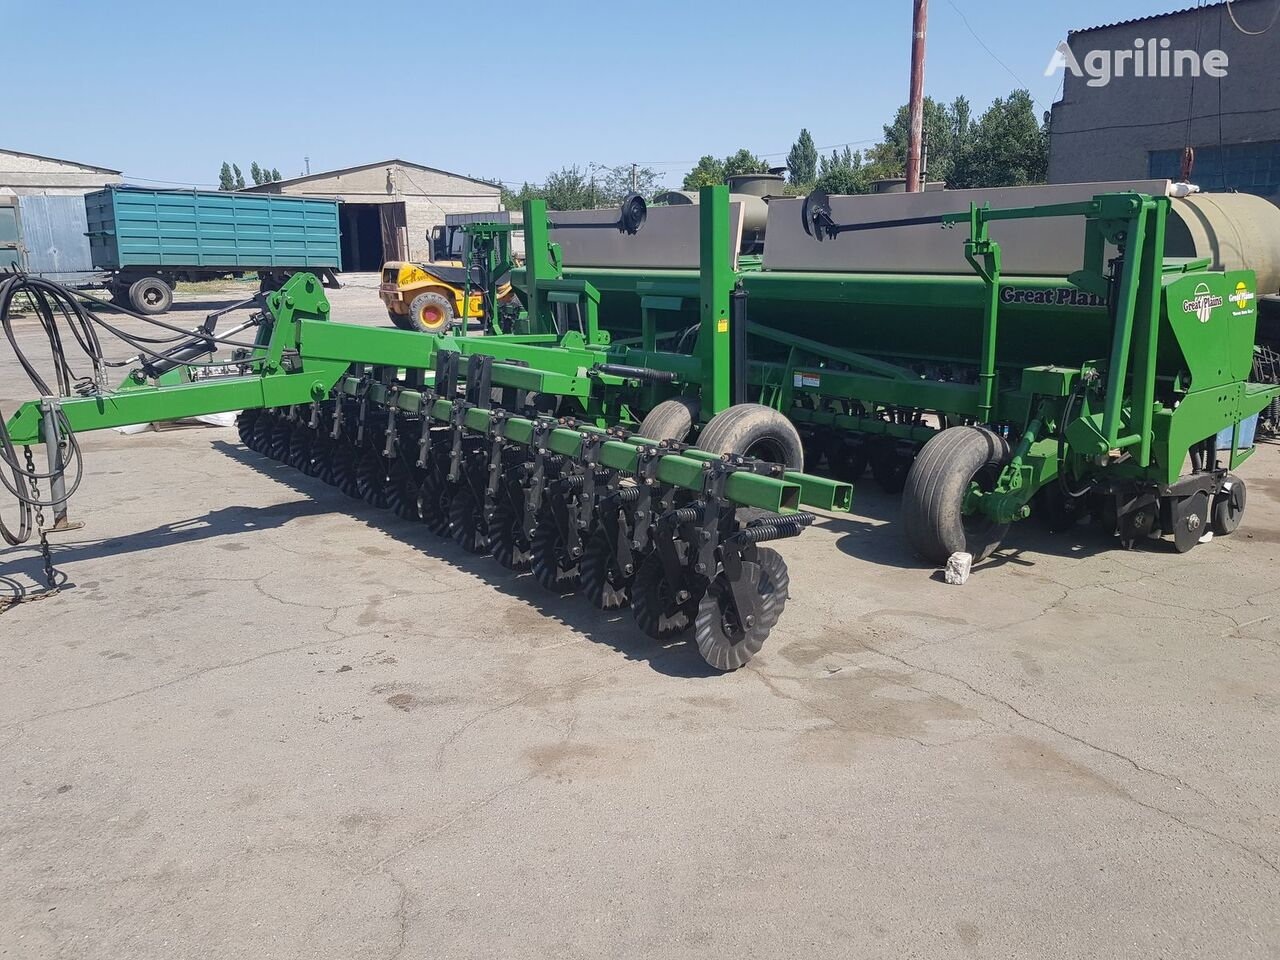 GREAT PLAINS CPH 2000 mechanical seed drill